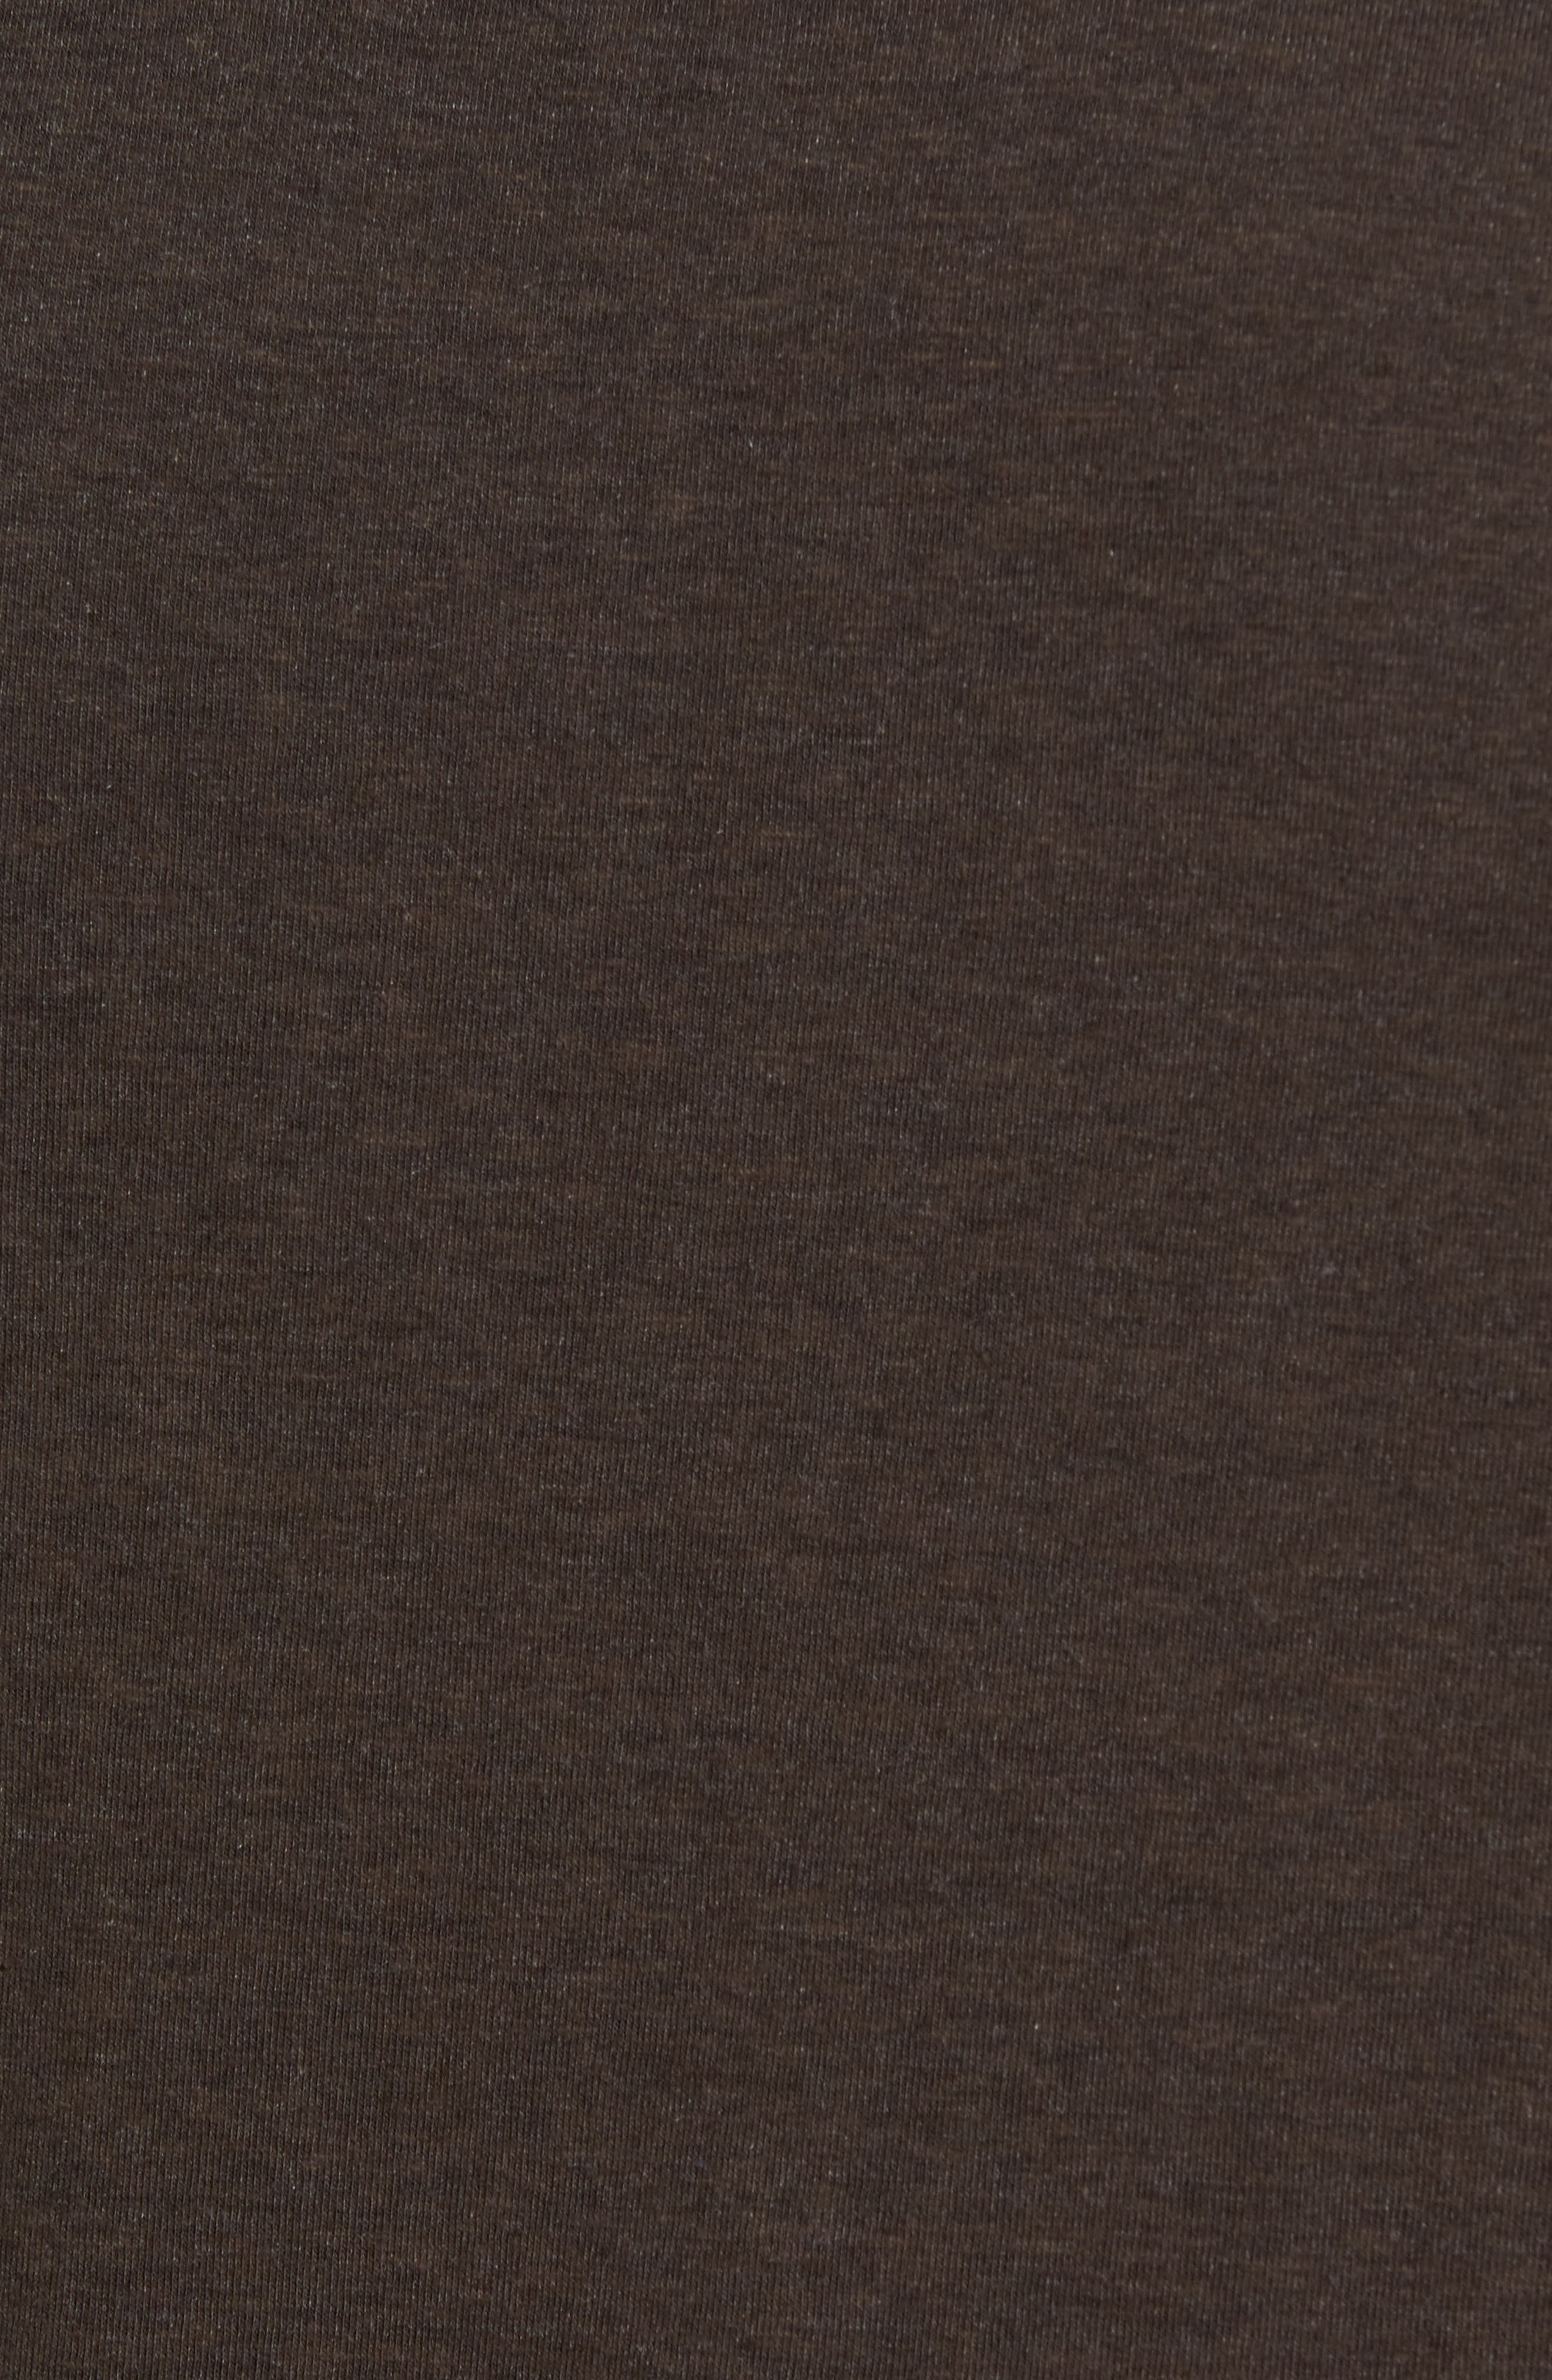 Crewneck Heathered T-Shirt,                             Alternate thumbnail 6, color,                             Espresso